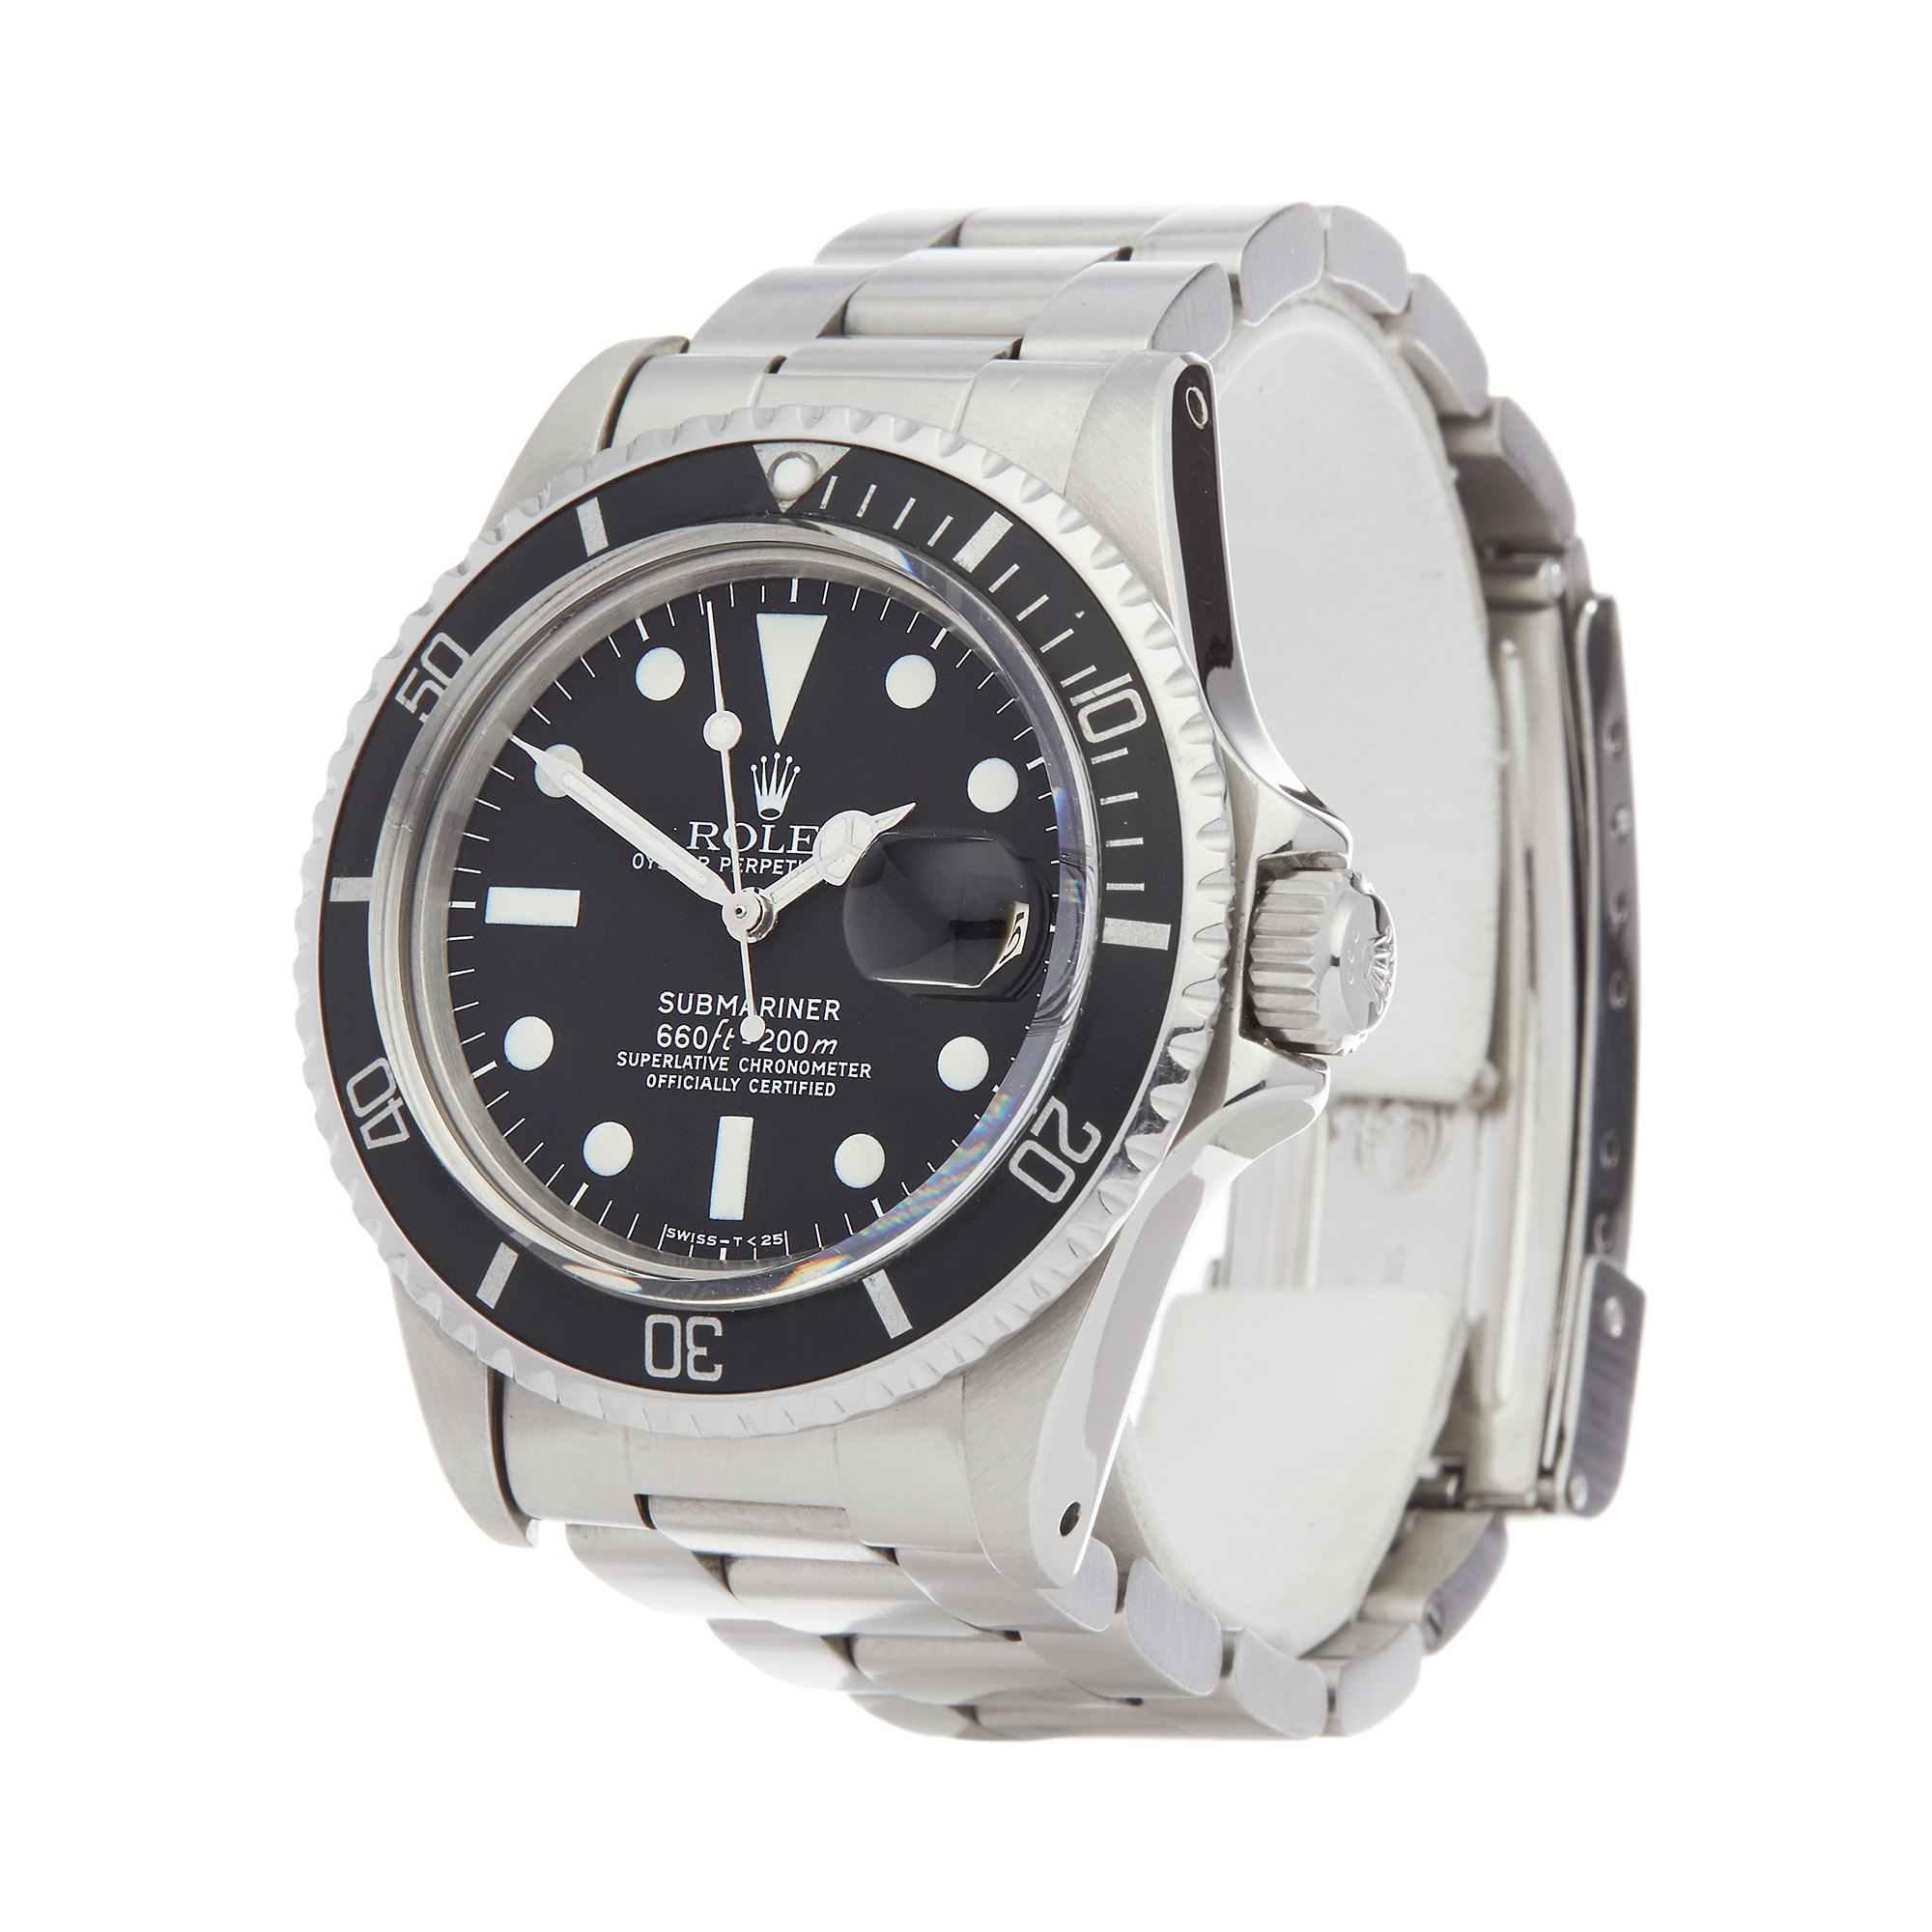 Rolex Submariner Mark 1 dial Stainless Steel - 1680 Stainless Steel 1680